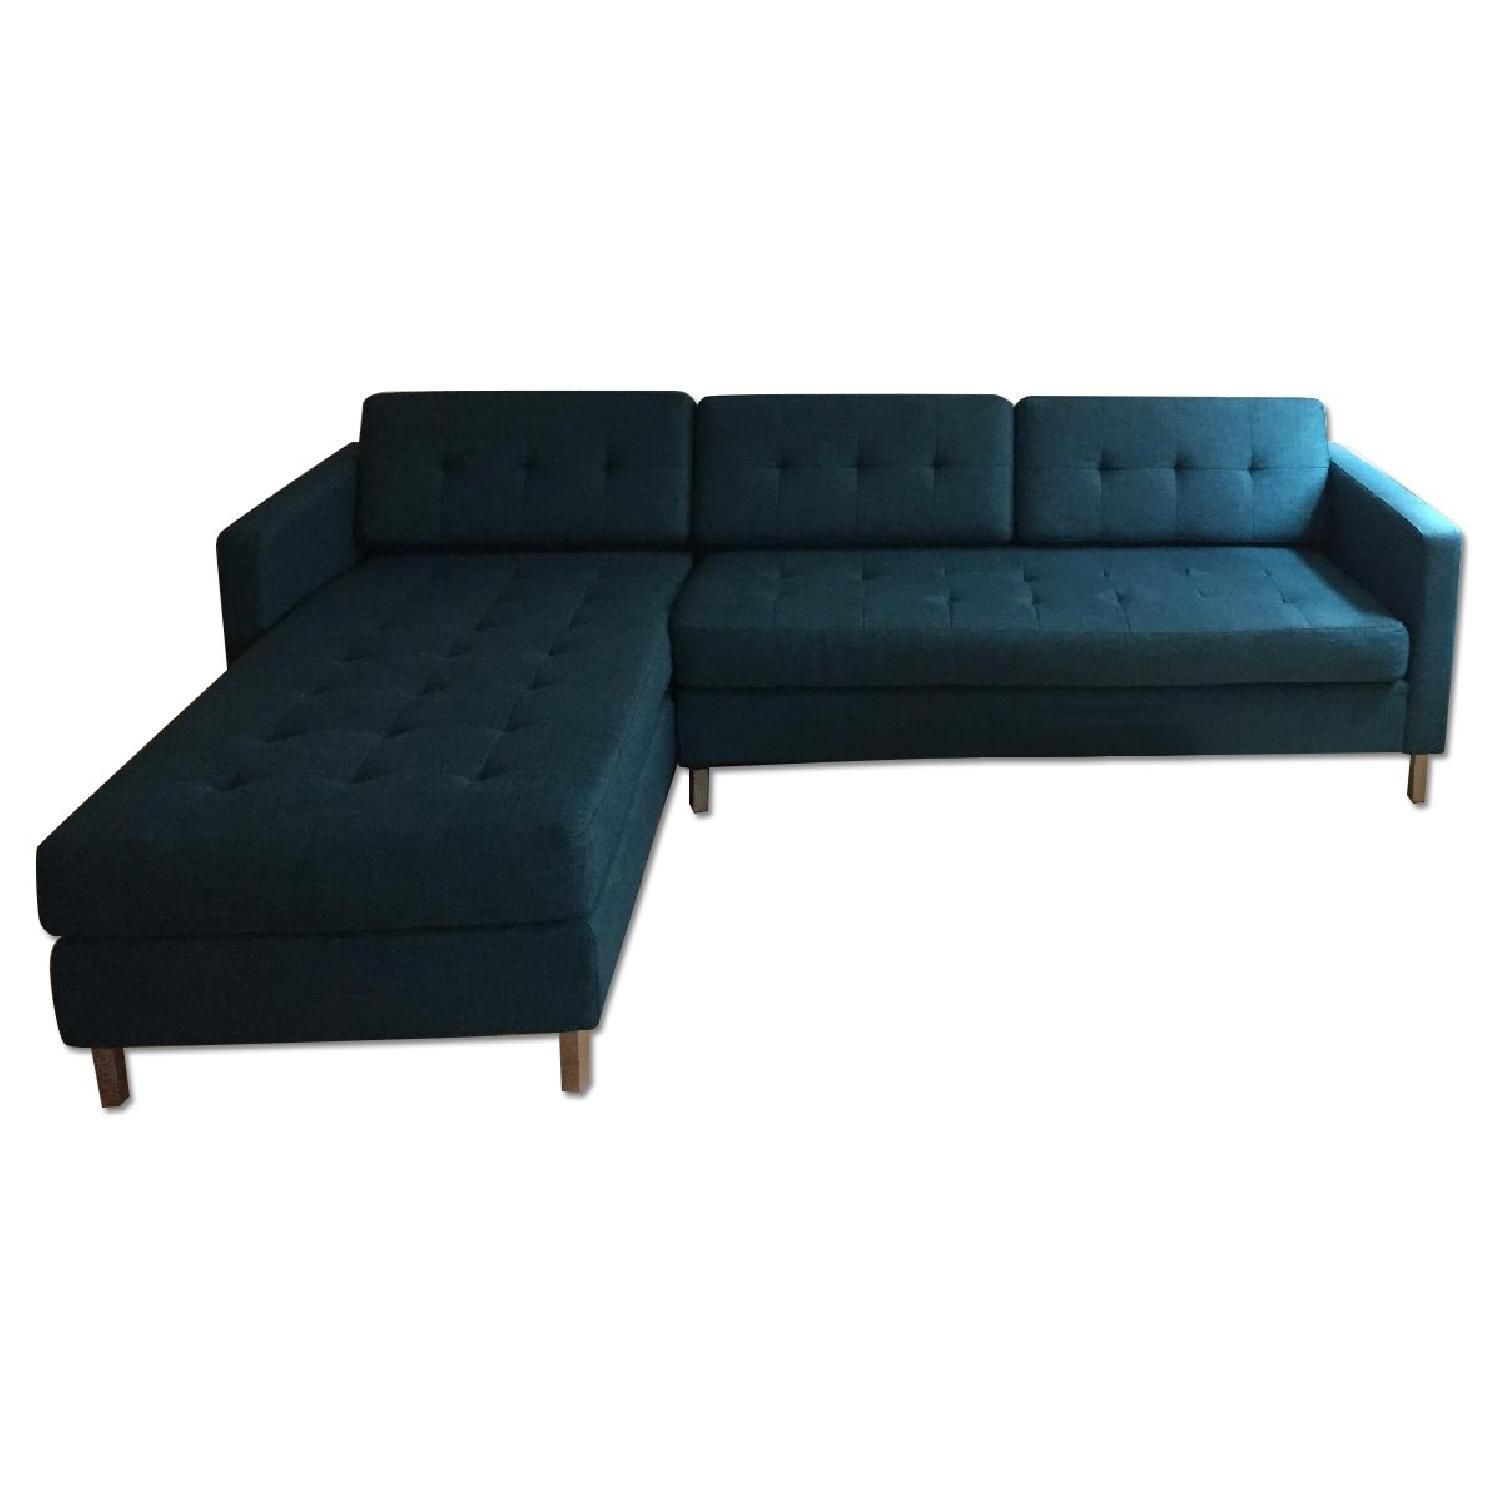 CB2 Ditto II Peacock Sectional Sofa Sofas